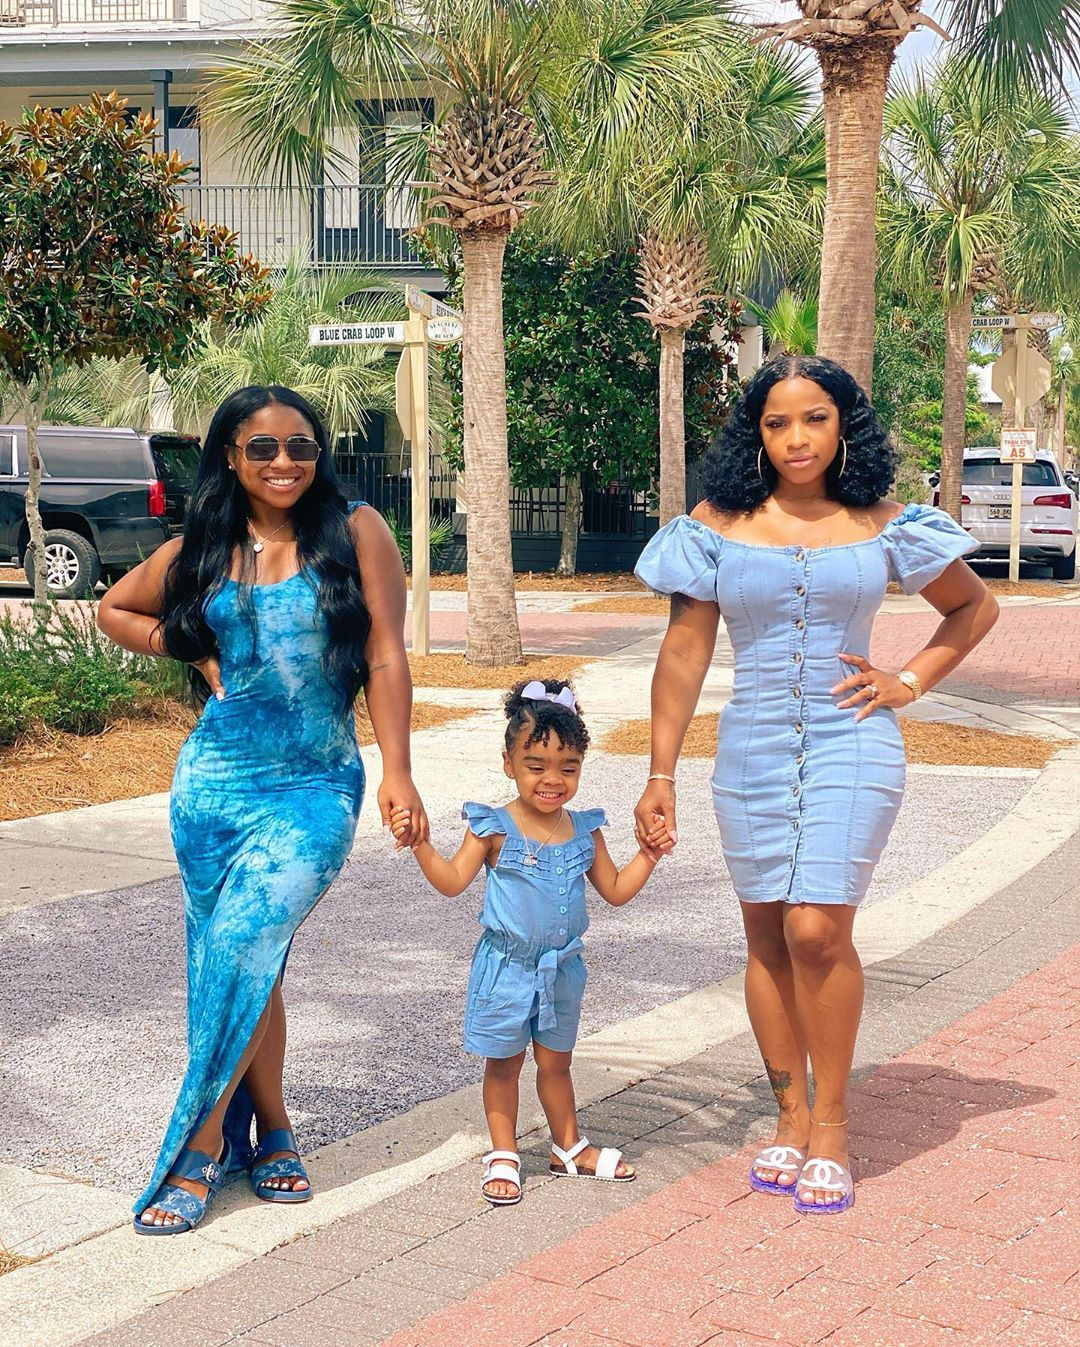 toya-johnsons-latest-family-photos-have-fans-in-awe